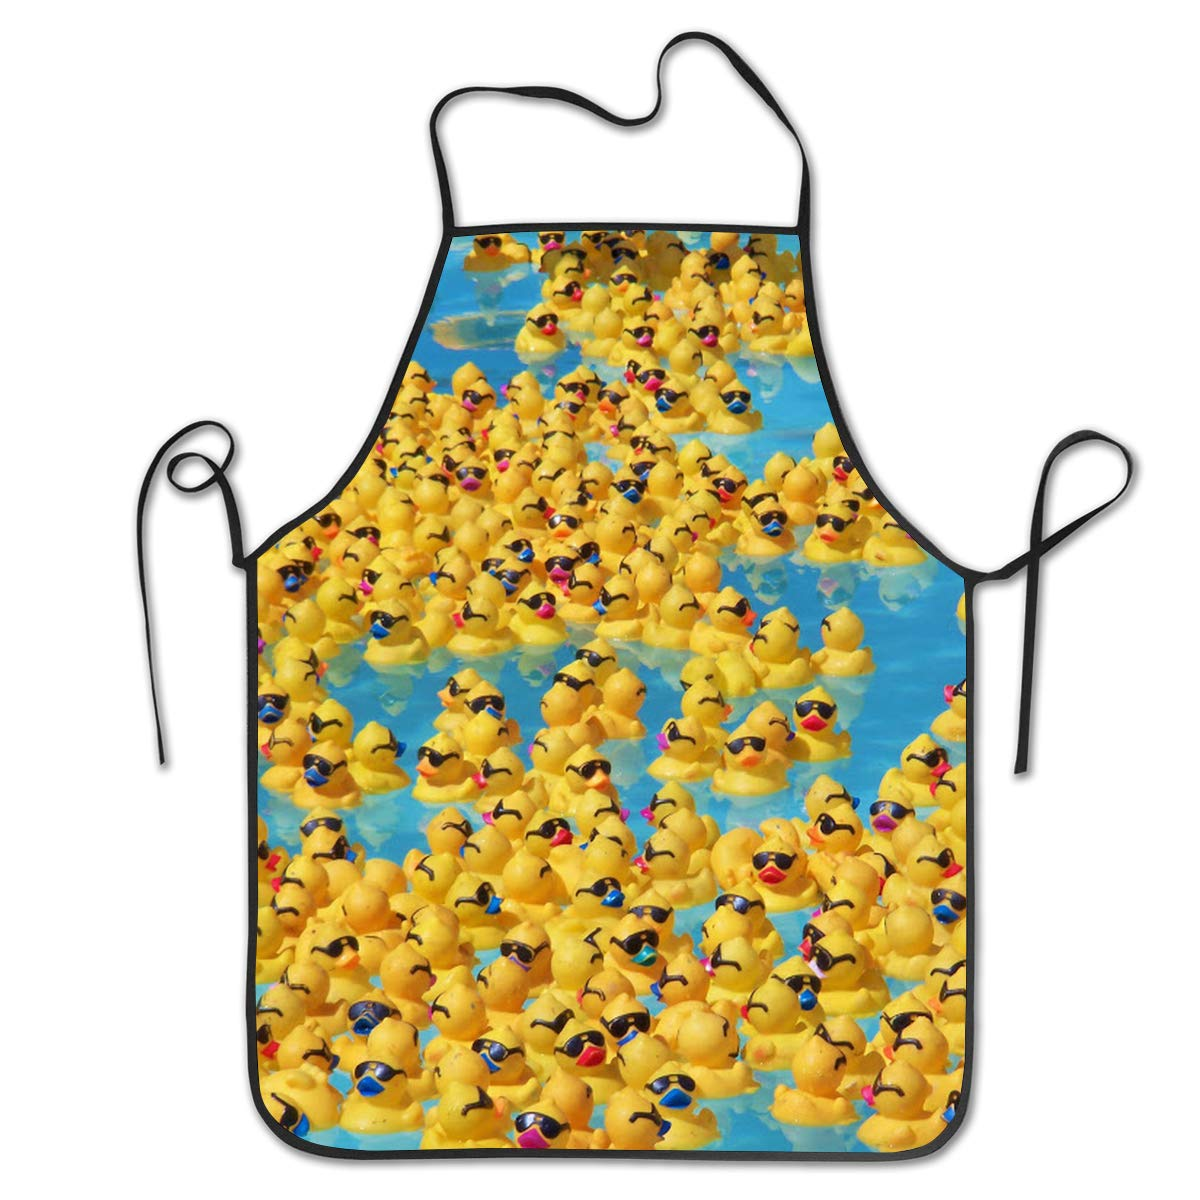 OKAYDECOR Kitchen Apron Cute Rubber Yellow Ducks with SunglassesBib Aprons Women Men Professional Chef Aprons with Extra Long Ties/Waterproof Waiter Hostess Apron for Restaurant Baking